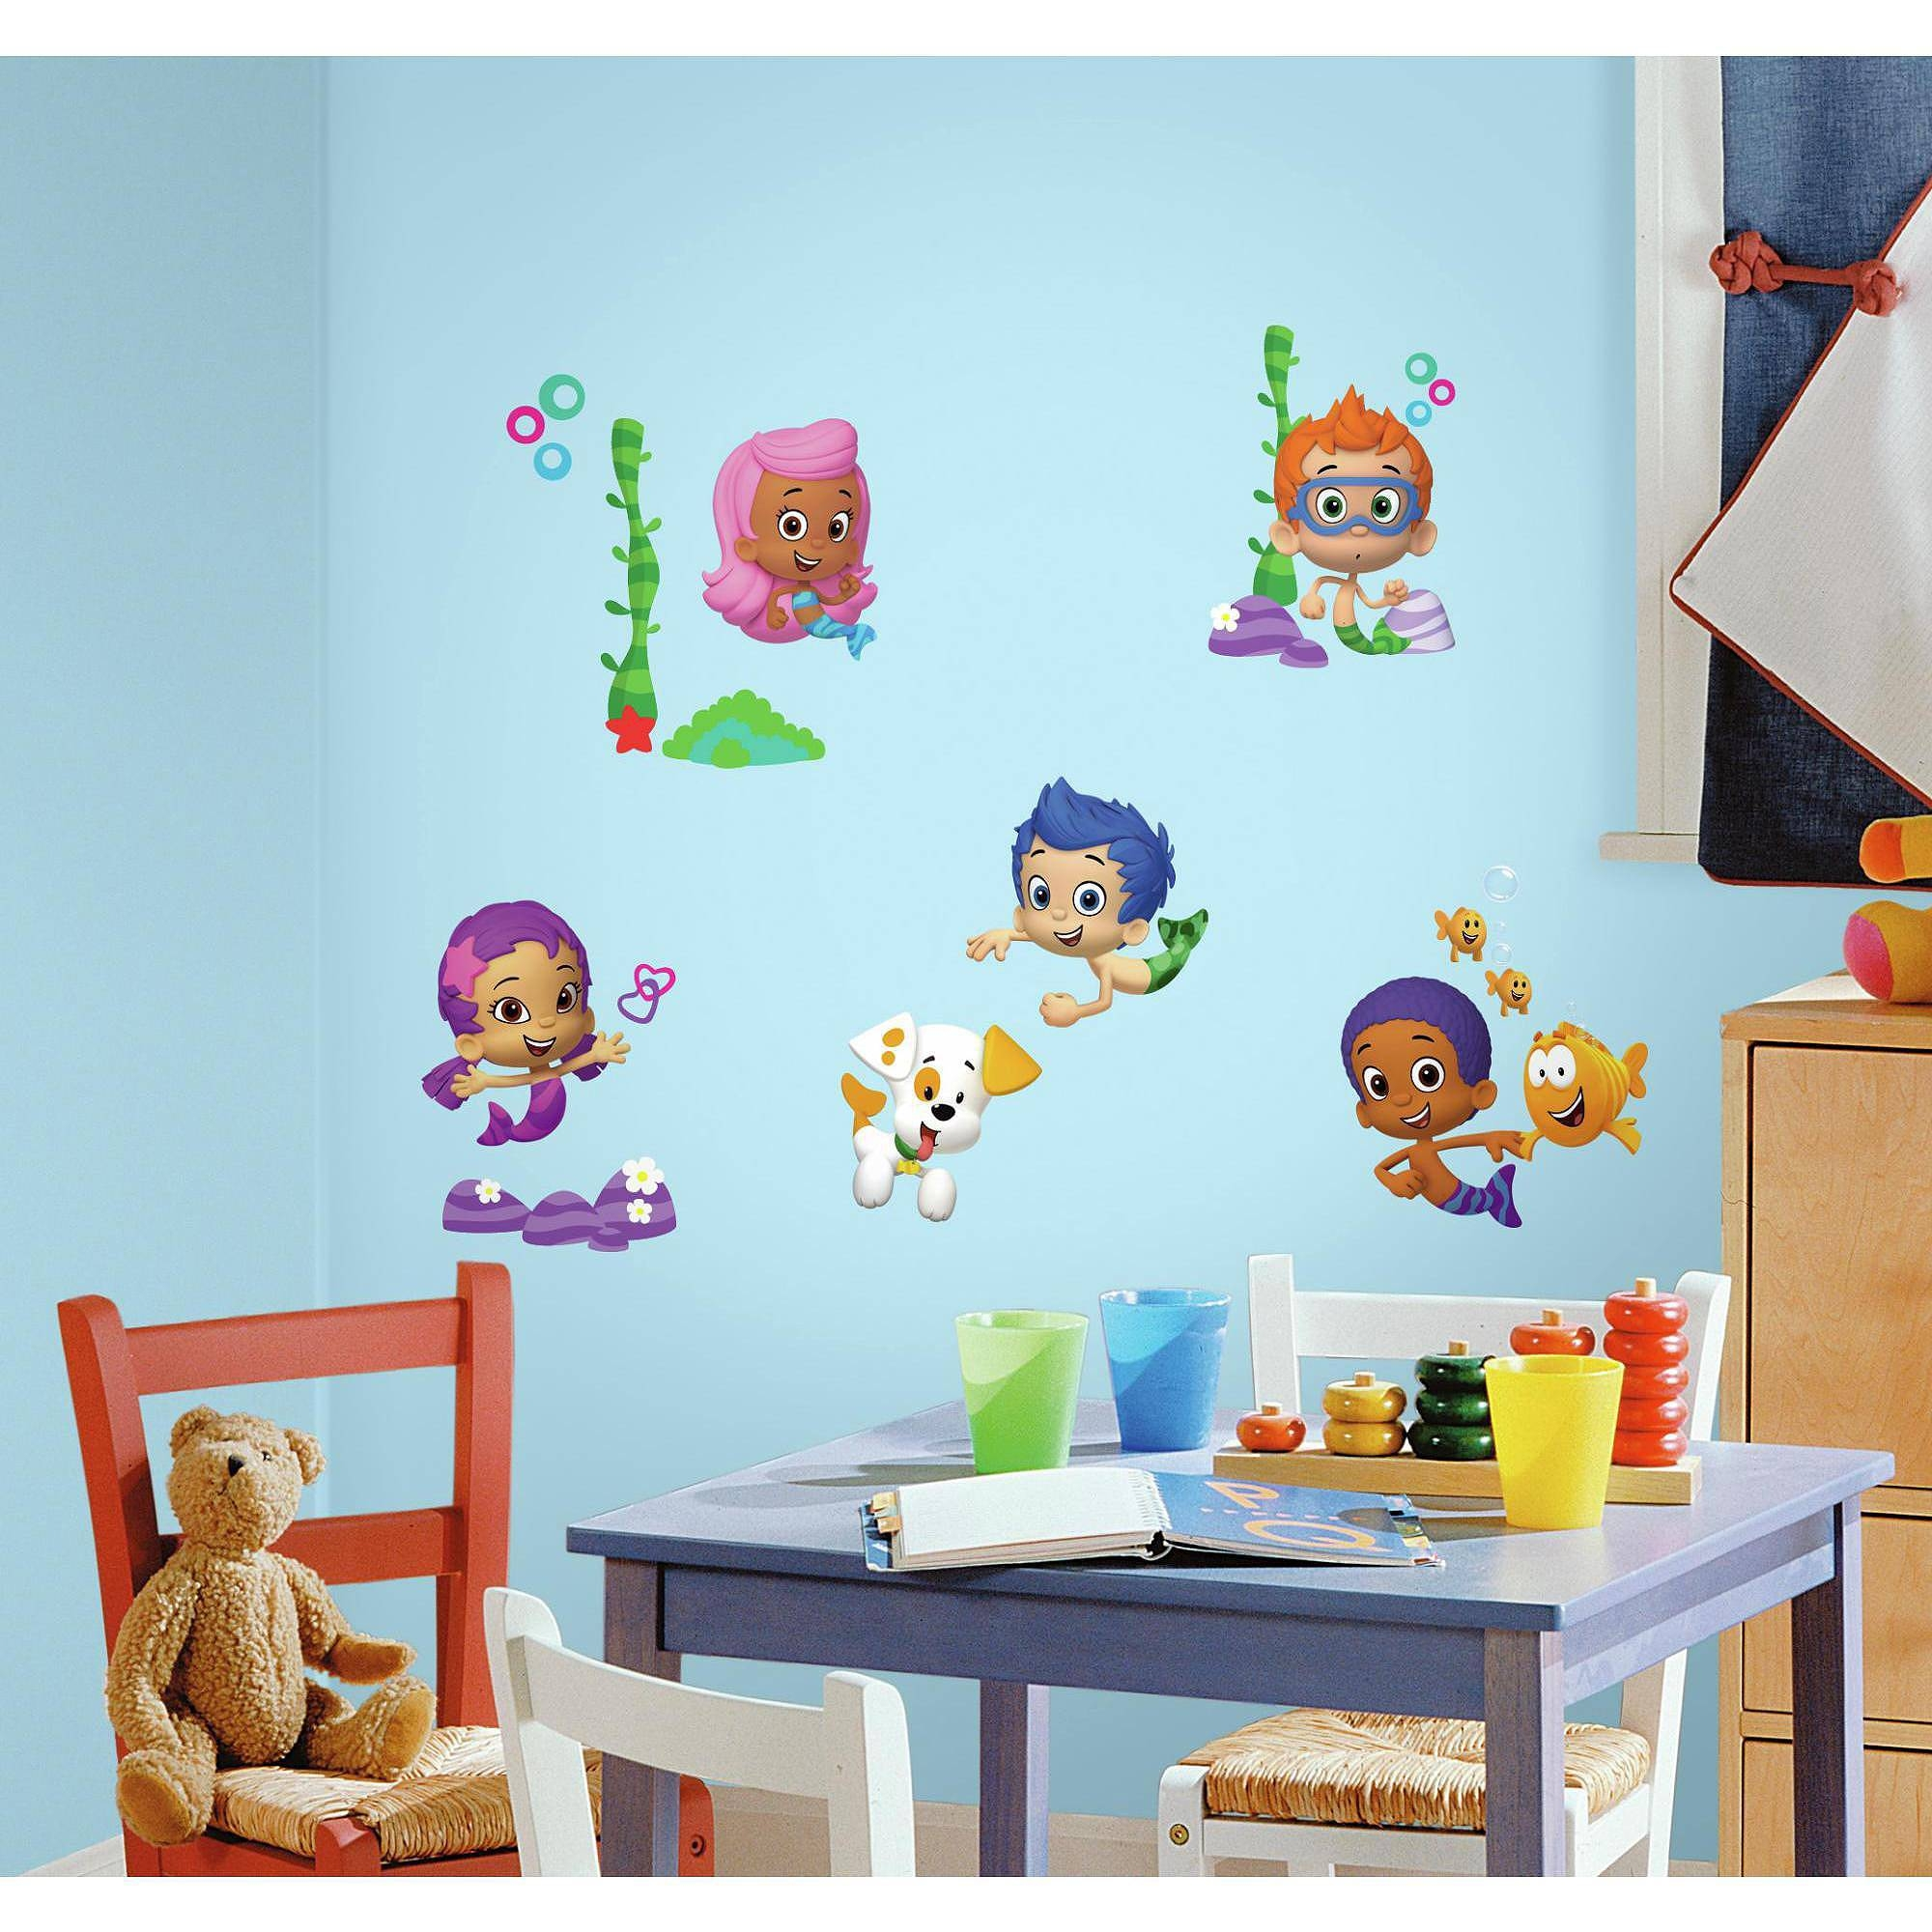 Bubble Guppies Peel And Stick Wall Decals – Walmart With Current Walmart Wall Stickers (View 11 of 25)